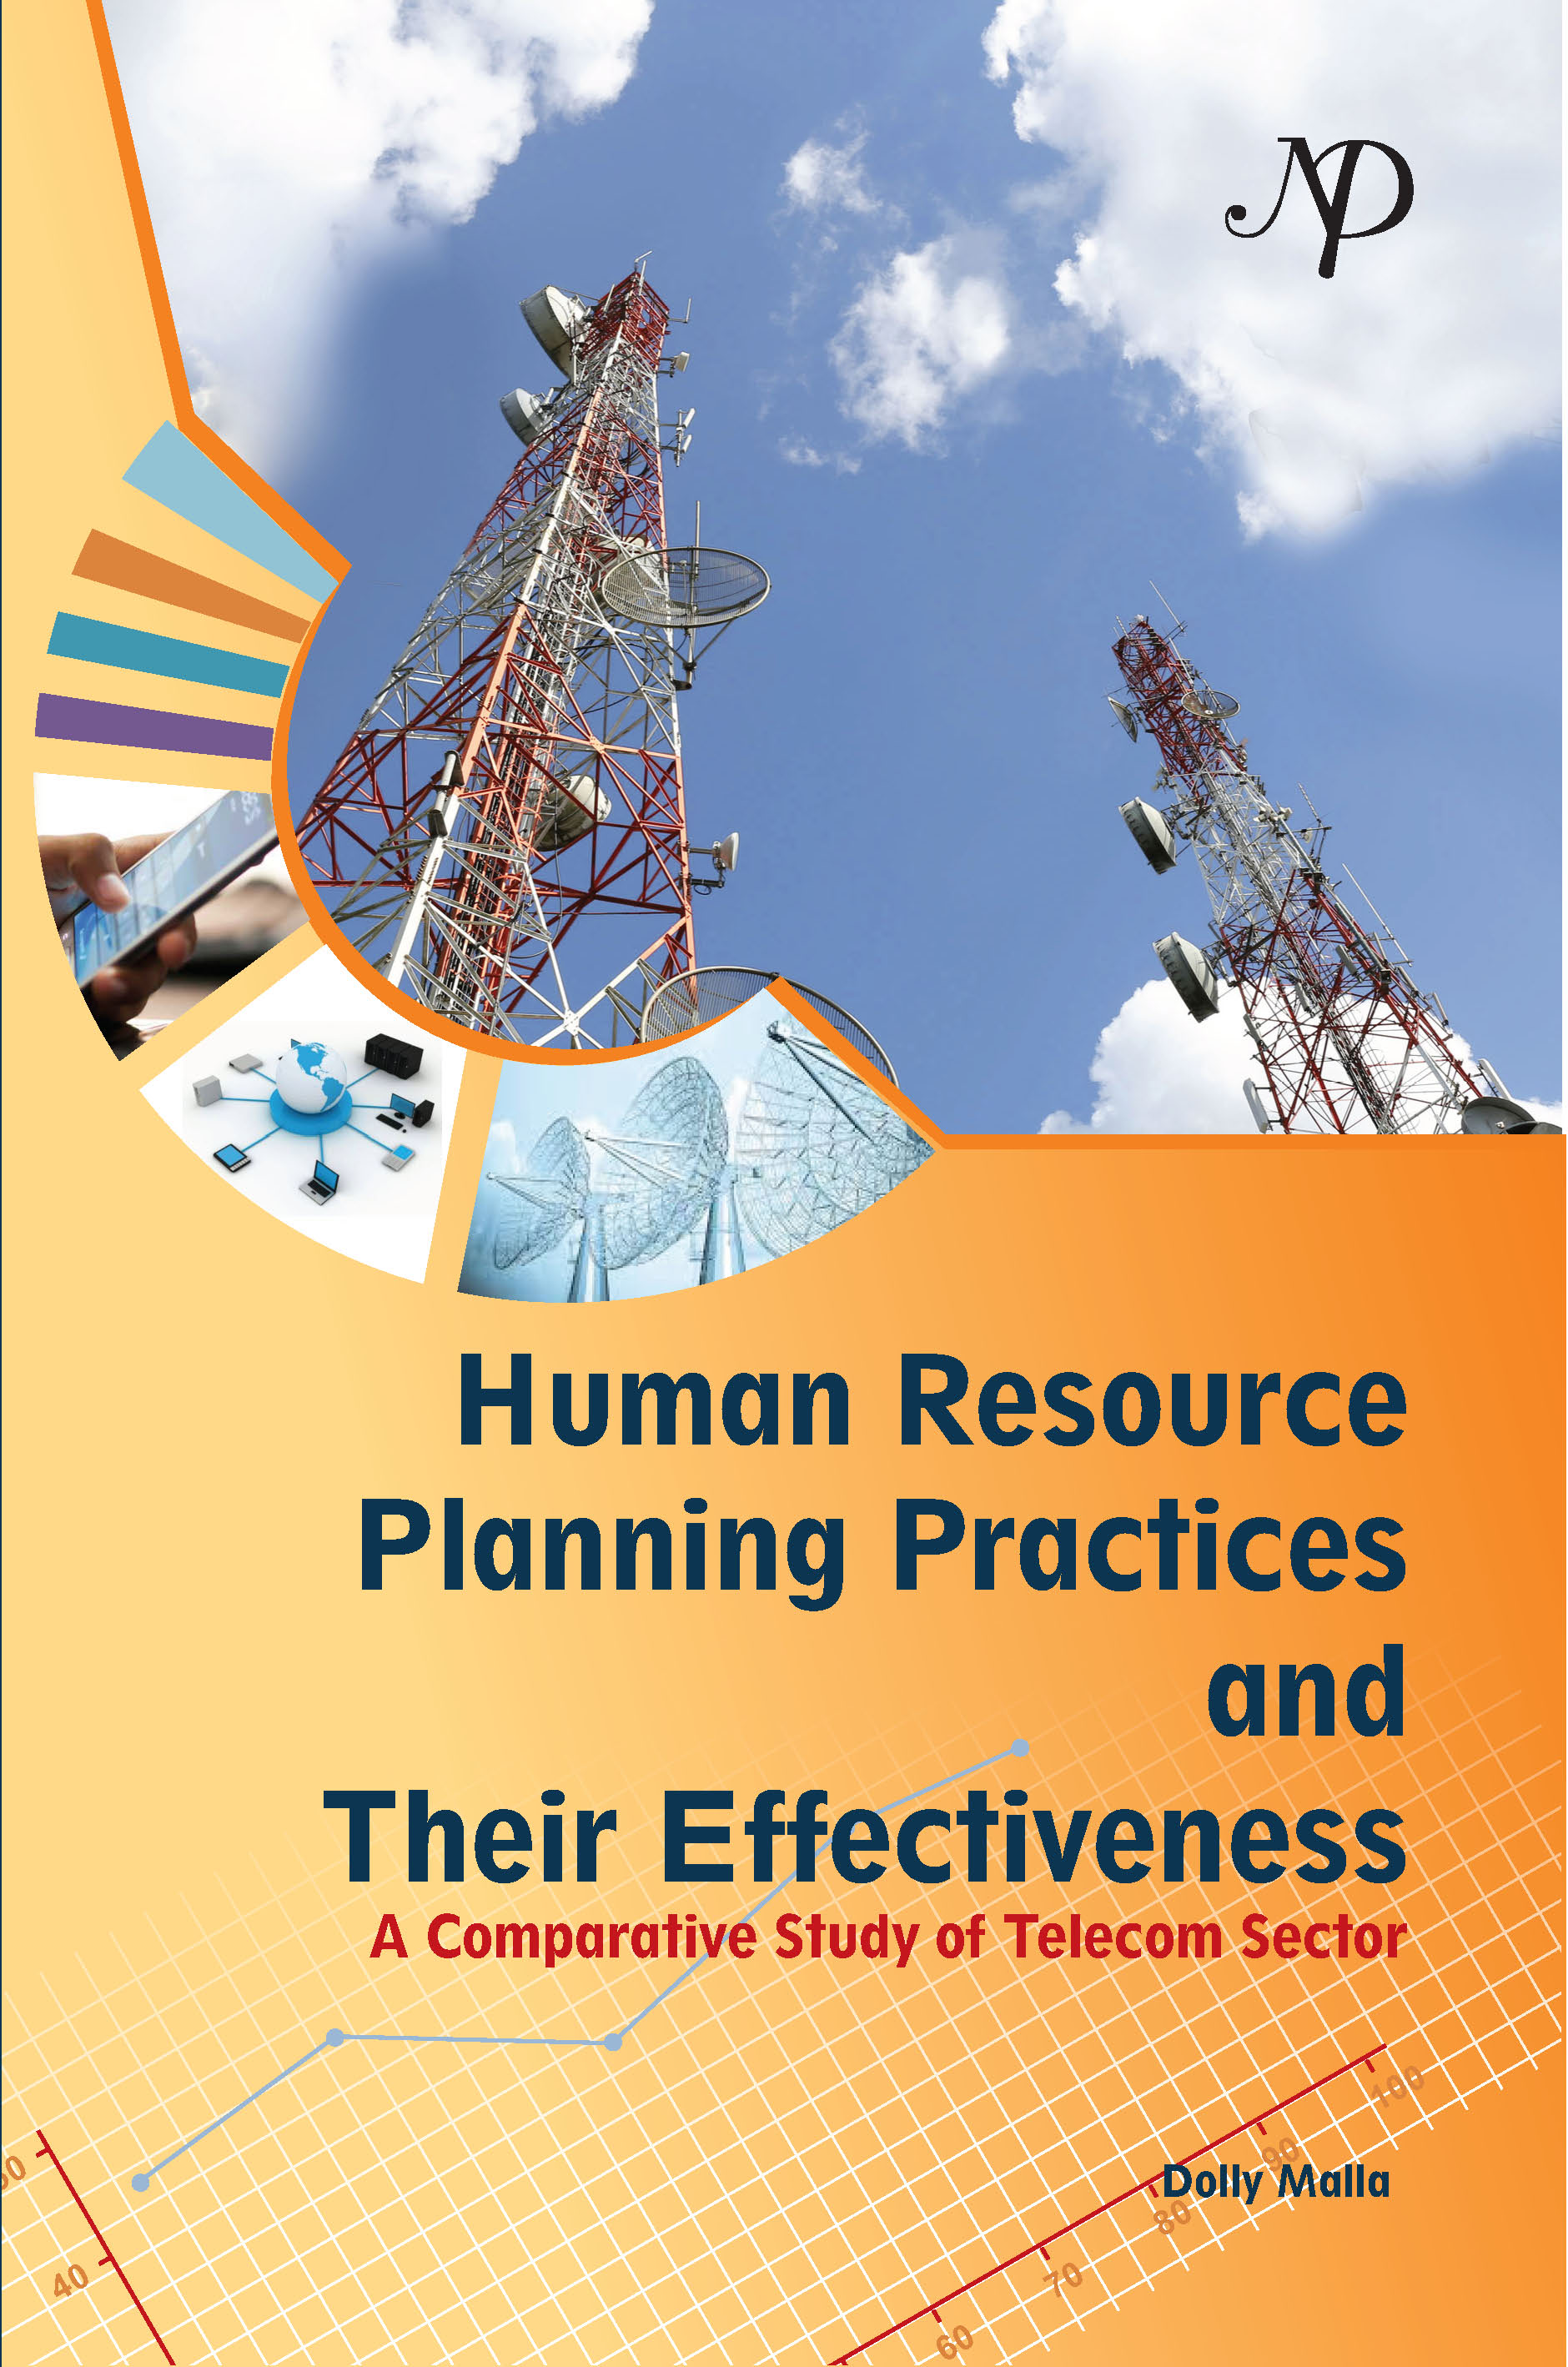 Human Resource Planning Cover.jpg